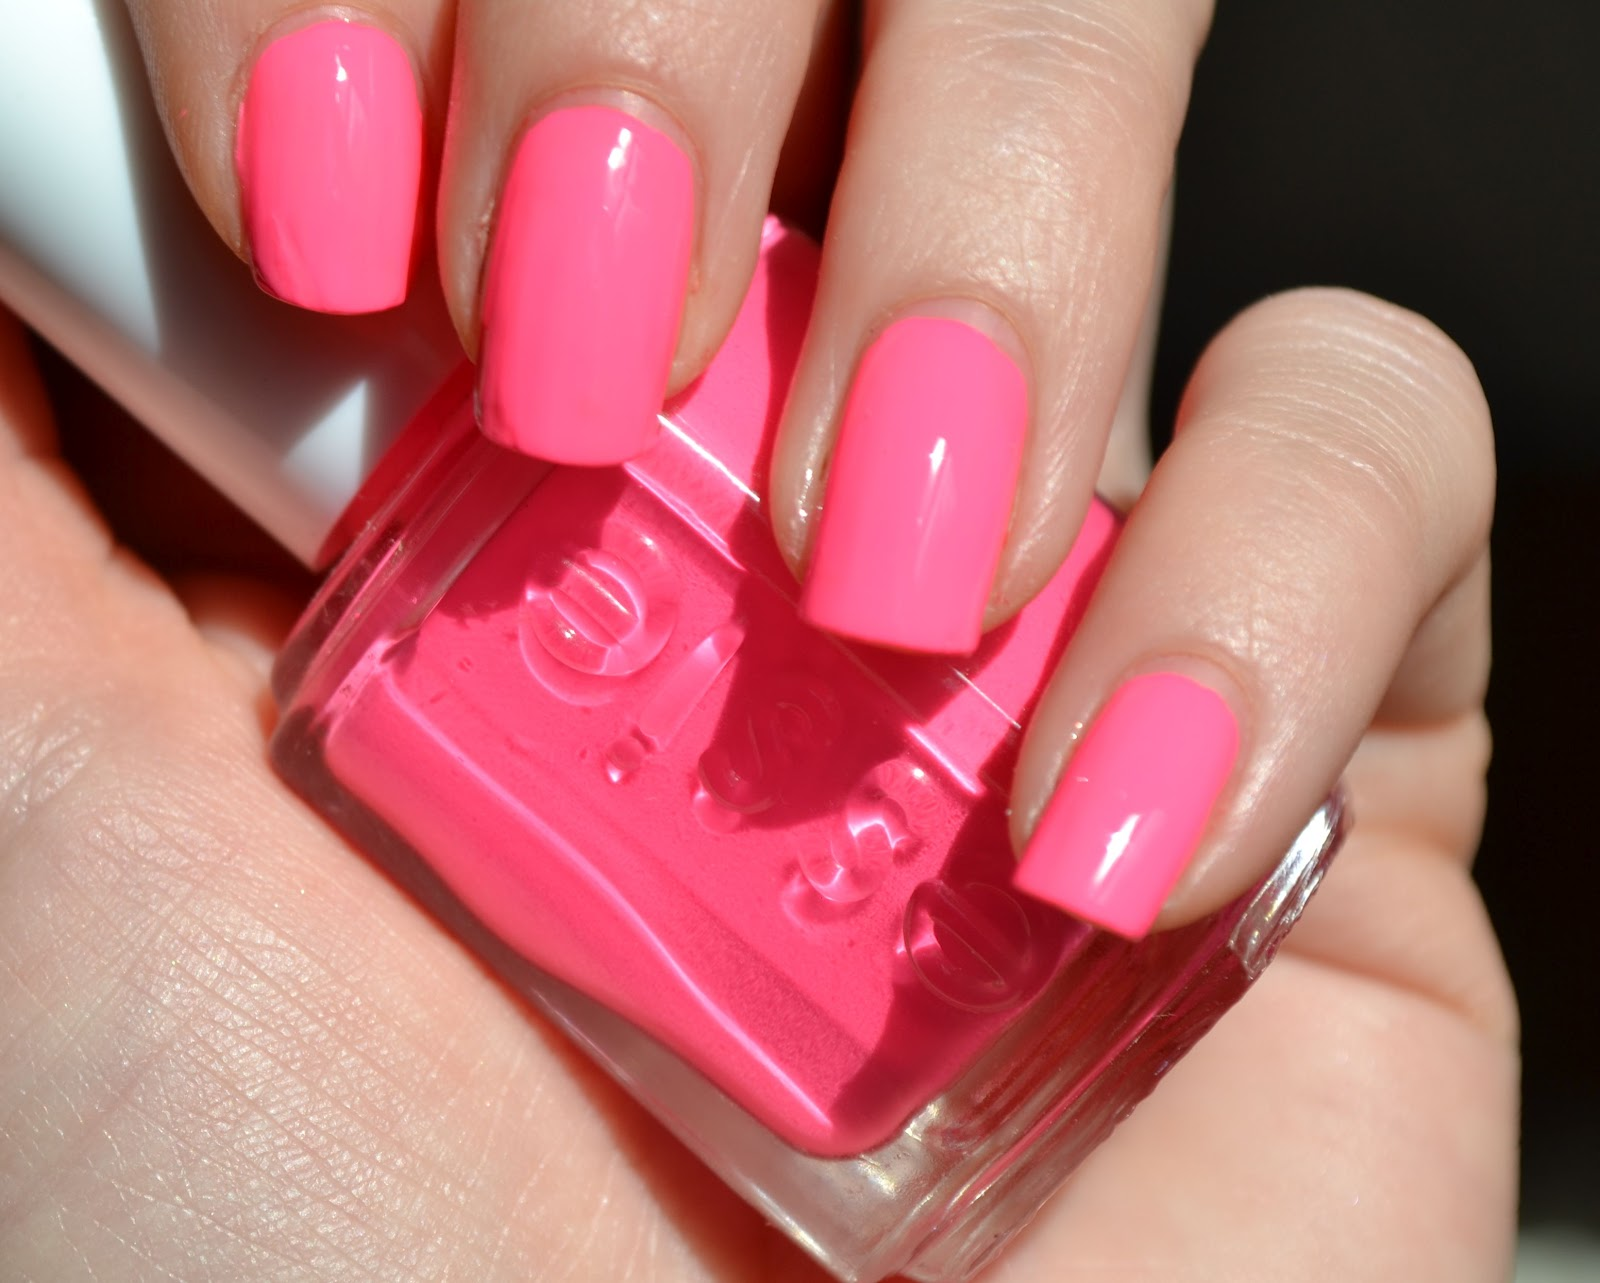 MakeUpVitamins: Essie Punchy Pink 694 Swatch, Review & Dupes